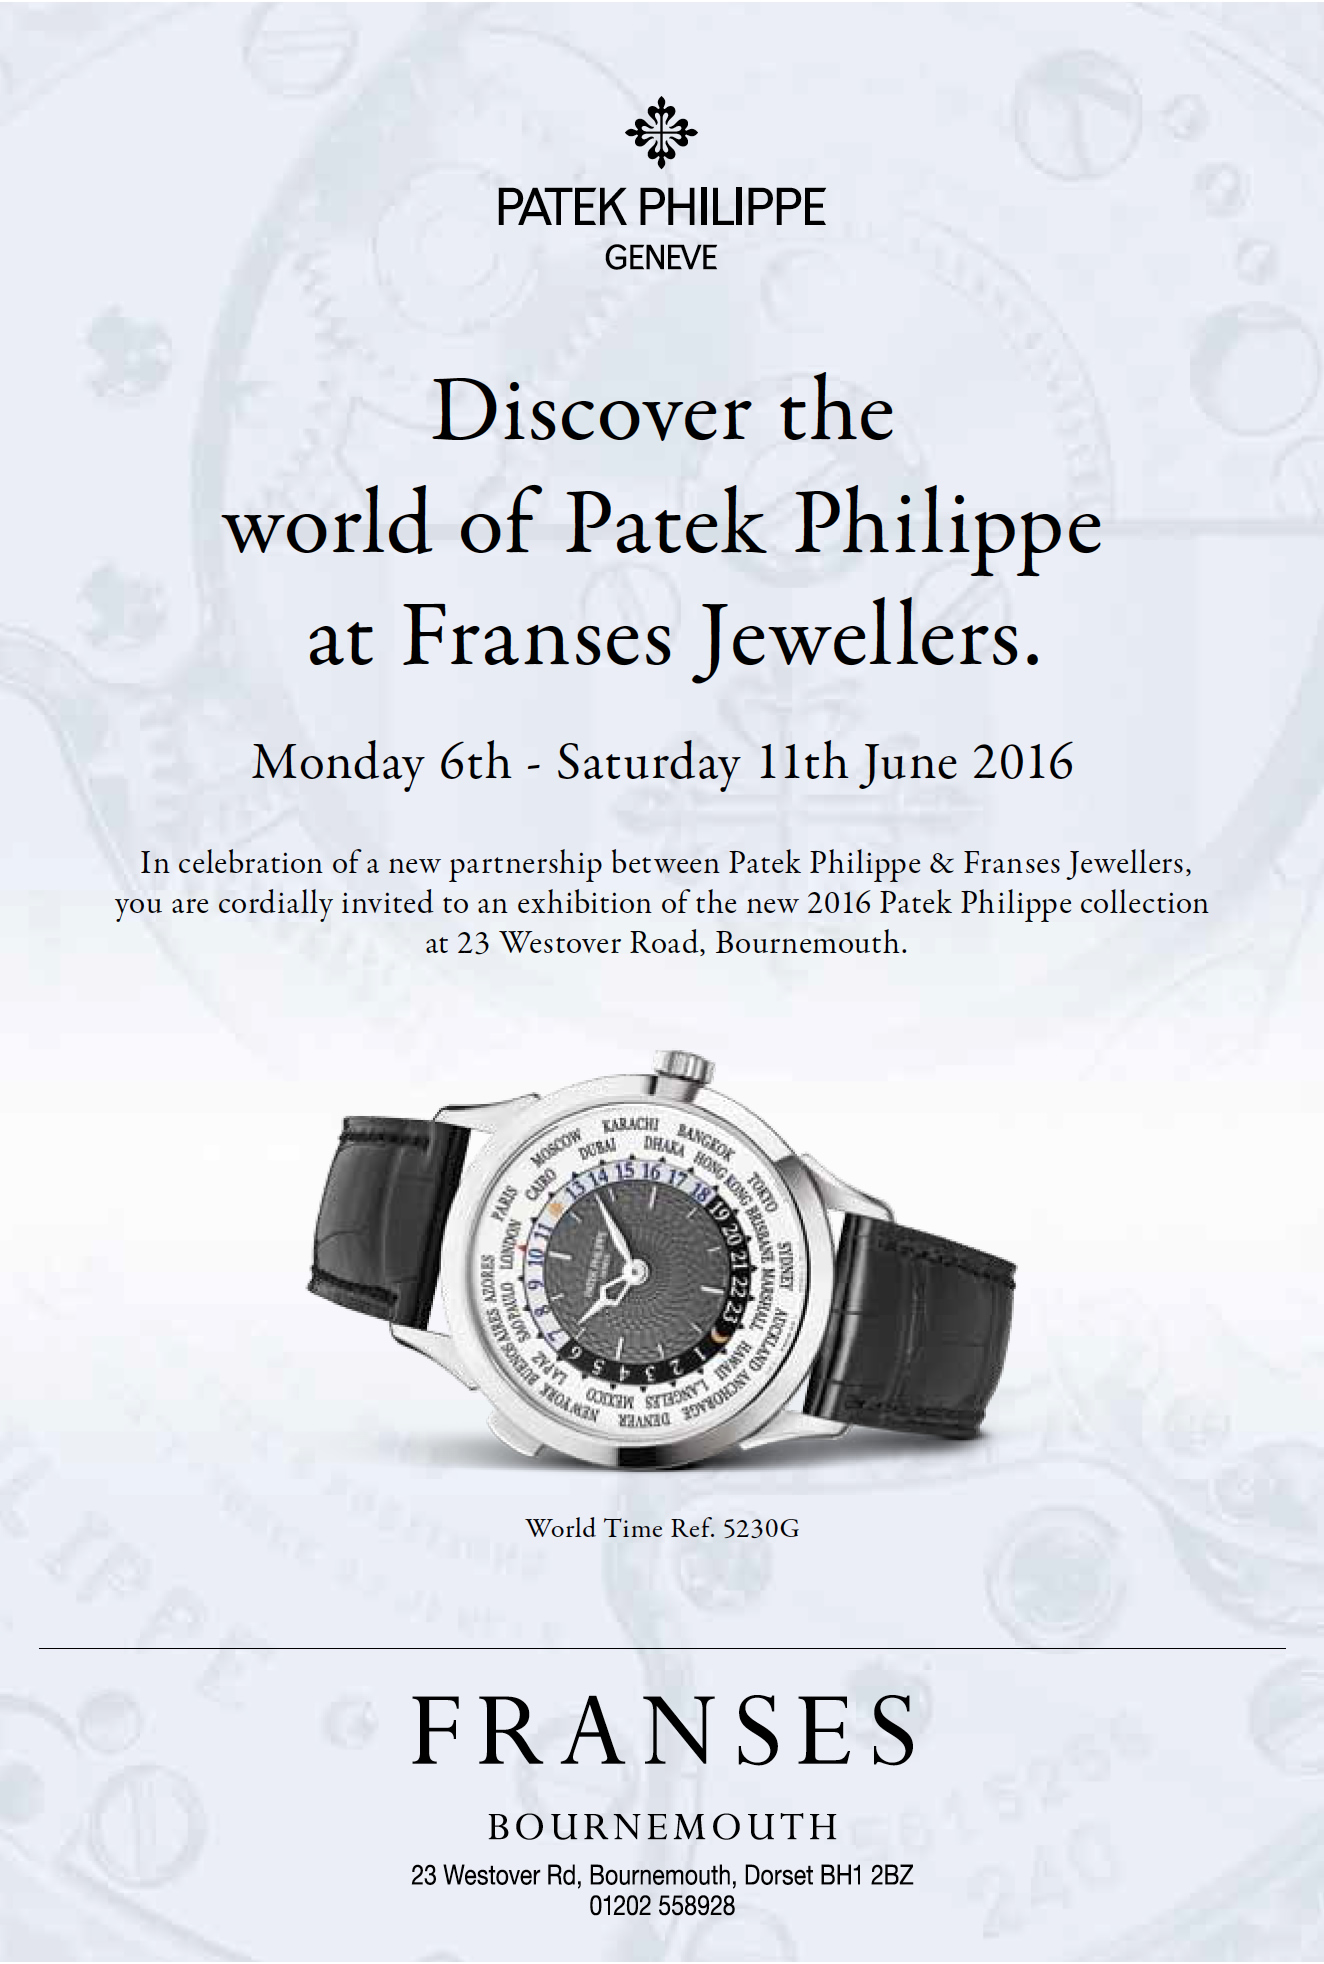 May 2016 - Patek Philippe at Franses Jewellers